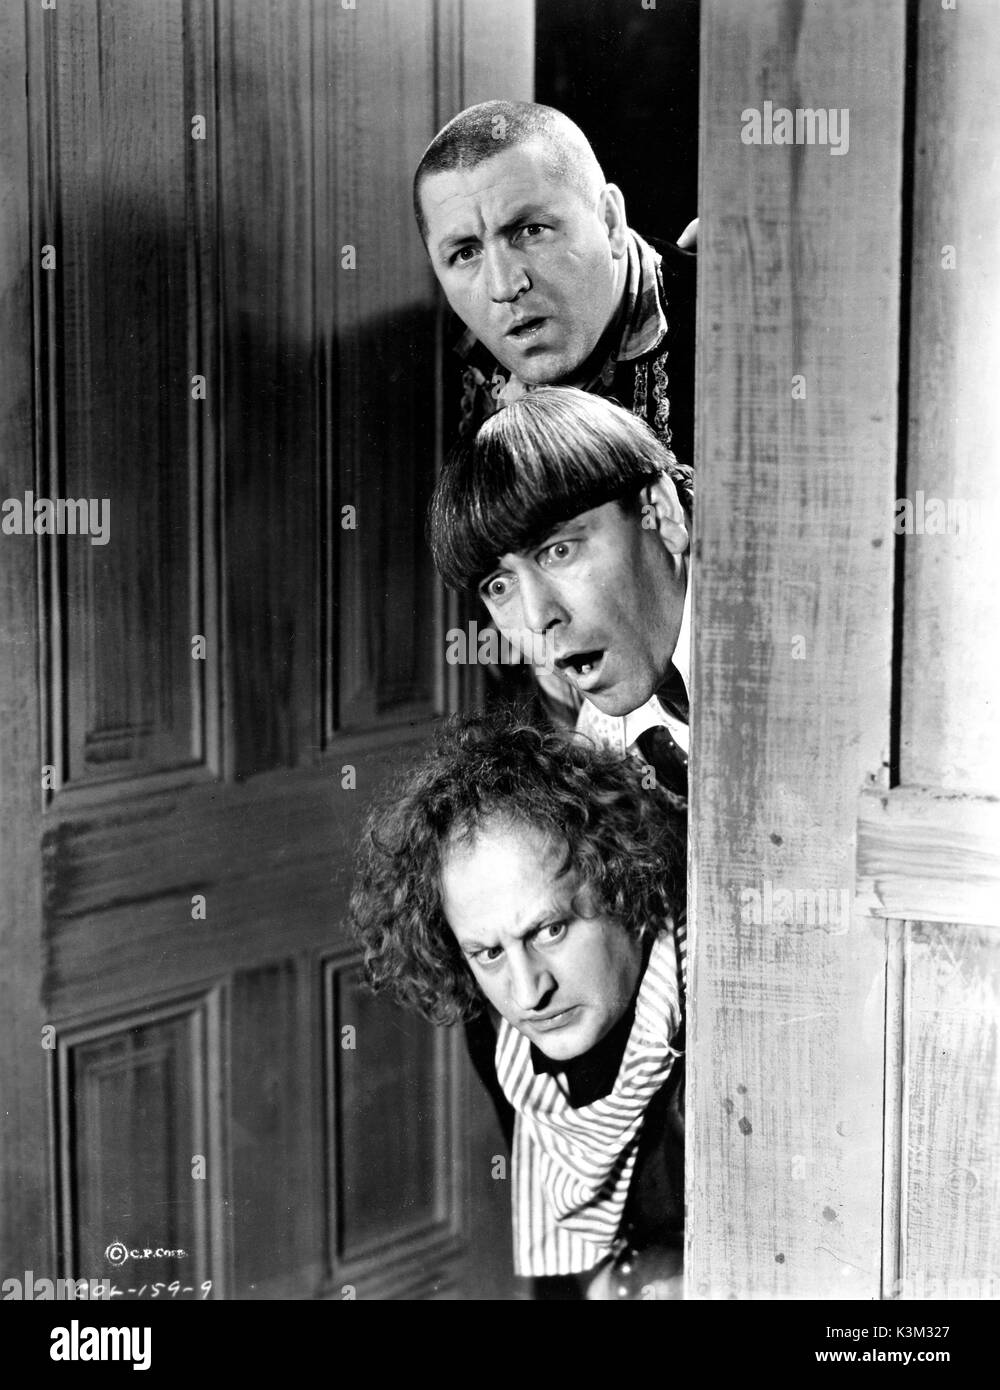 the three stooges curly howard moe howard larry fine